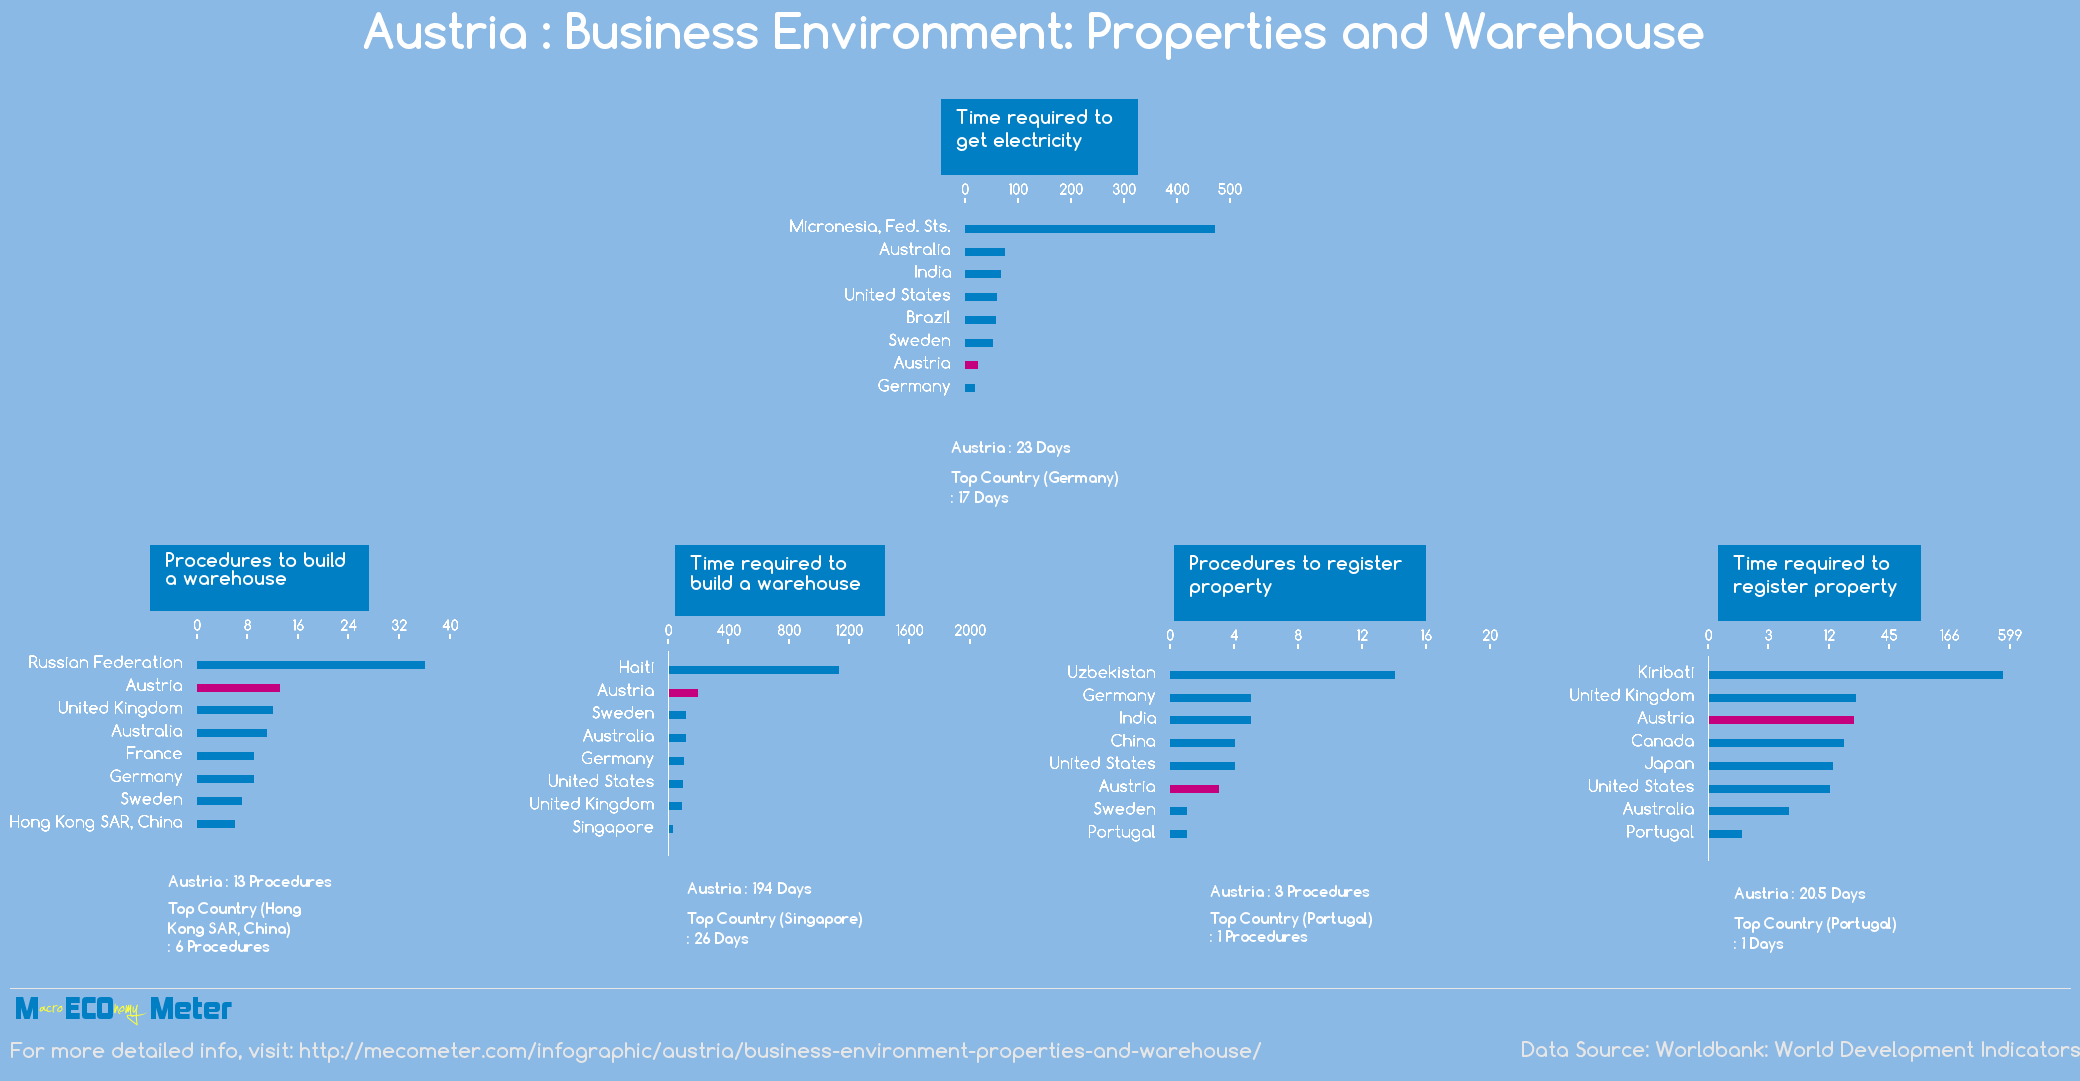 Austria : Business Environment: Properties and Warehouse